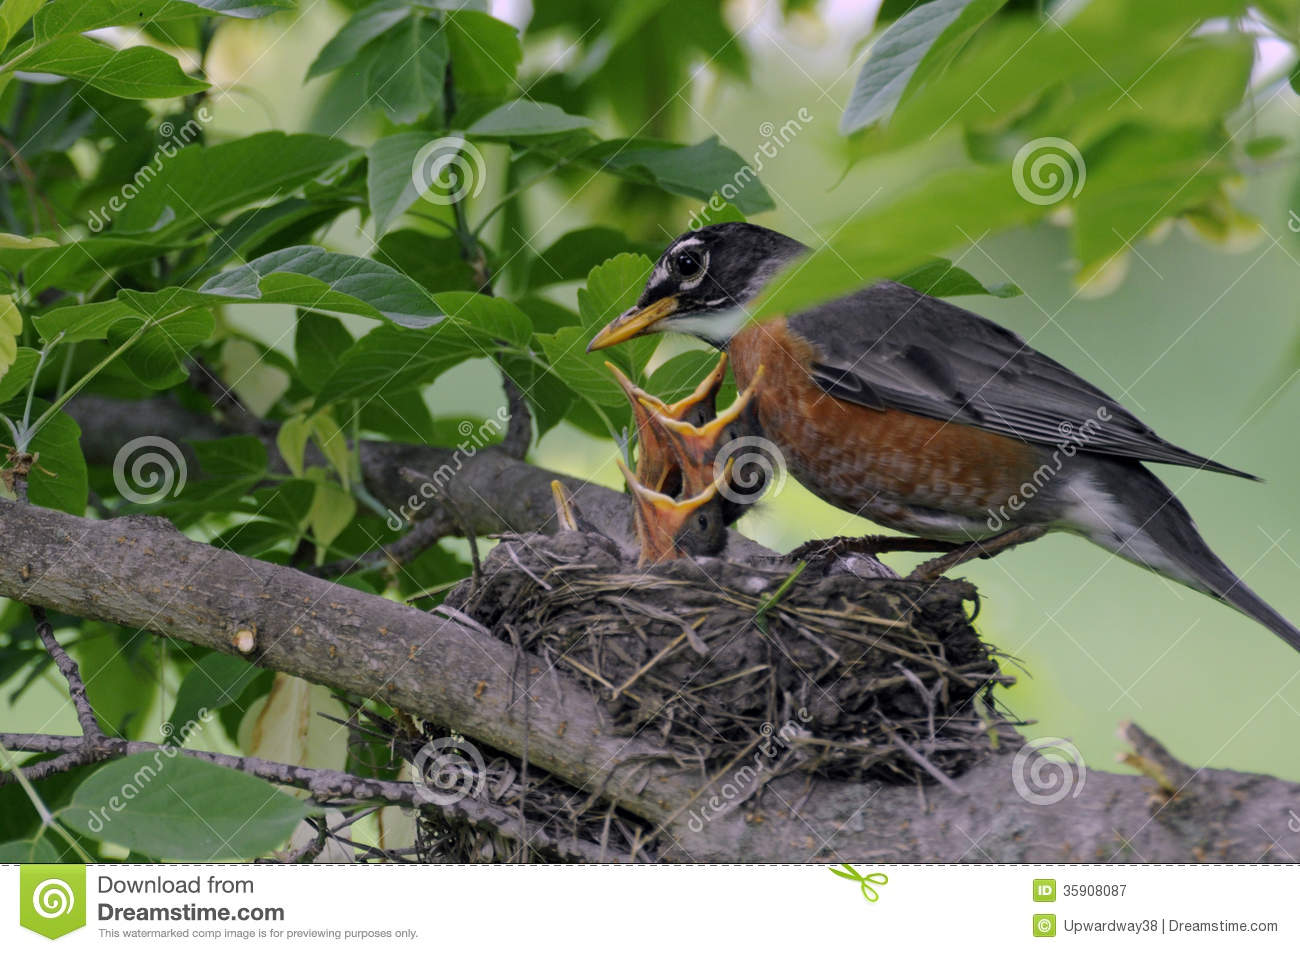 how to make bird food for baby birds